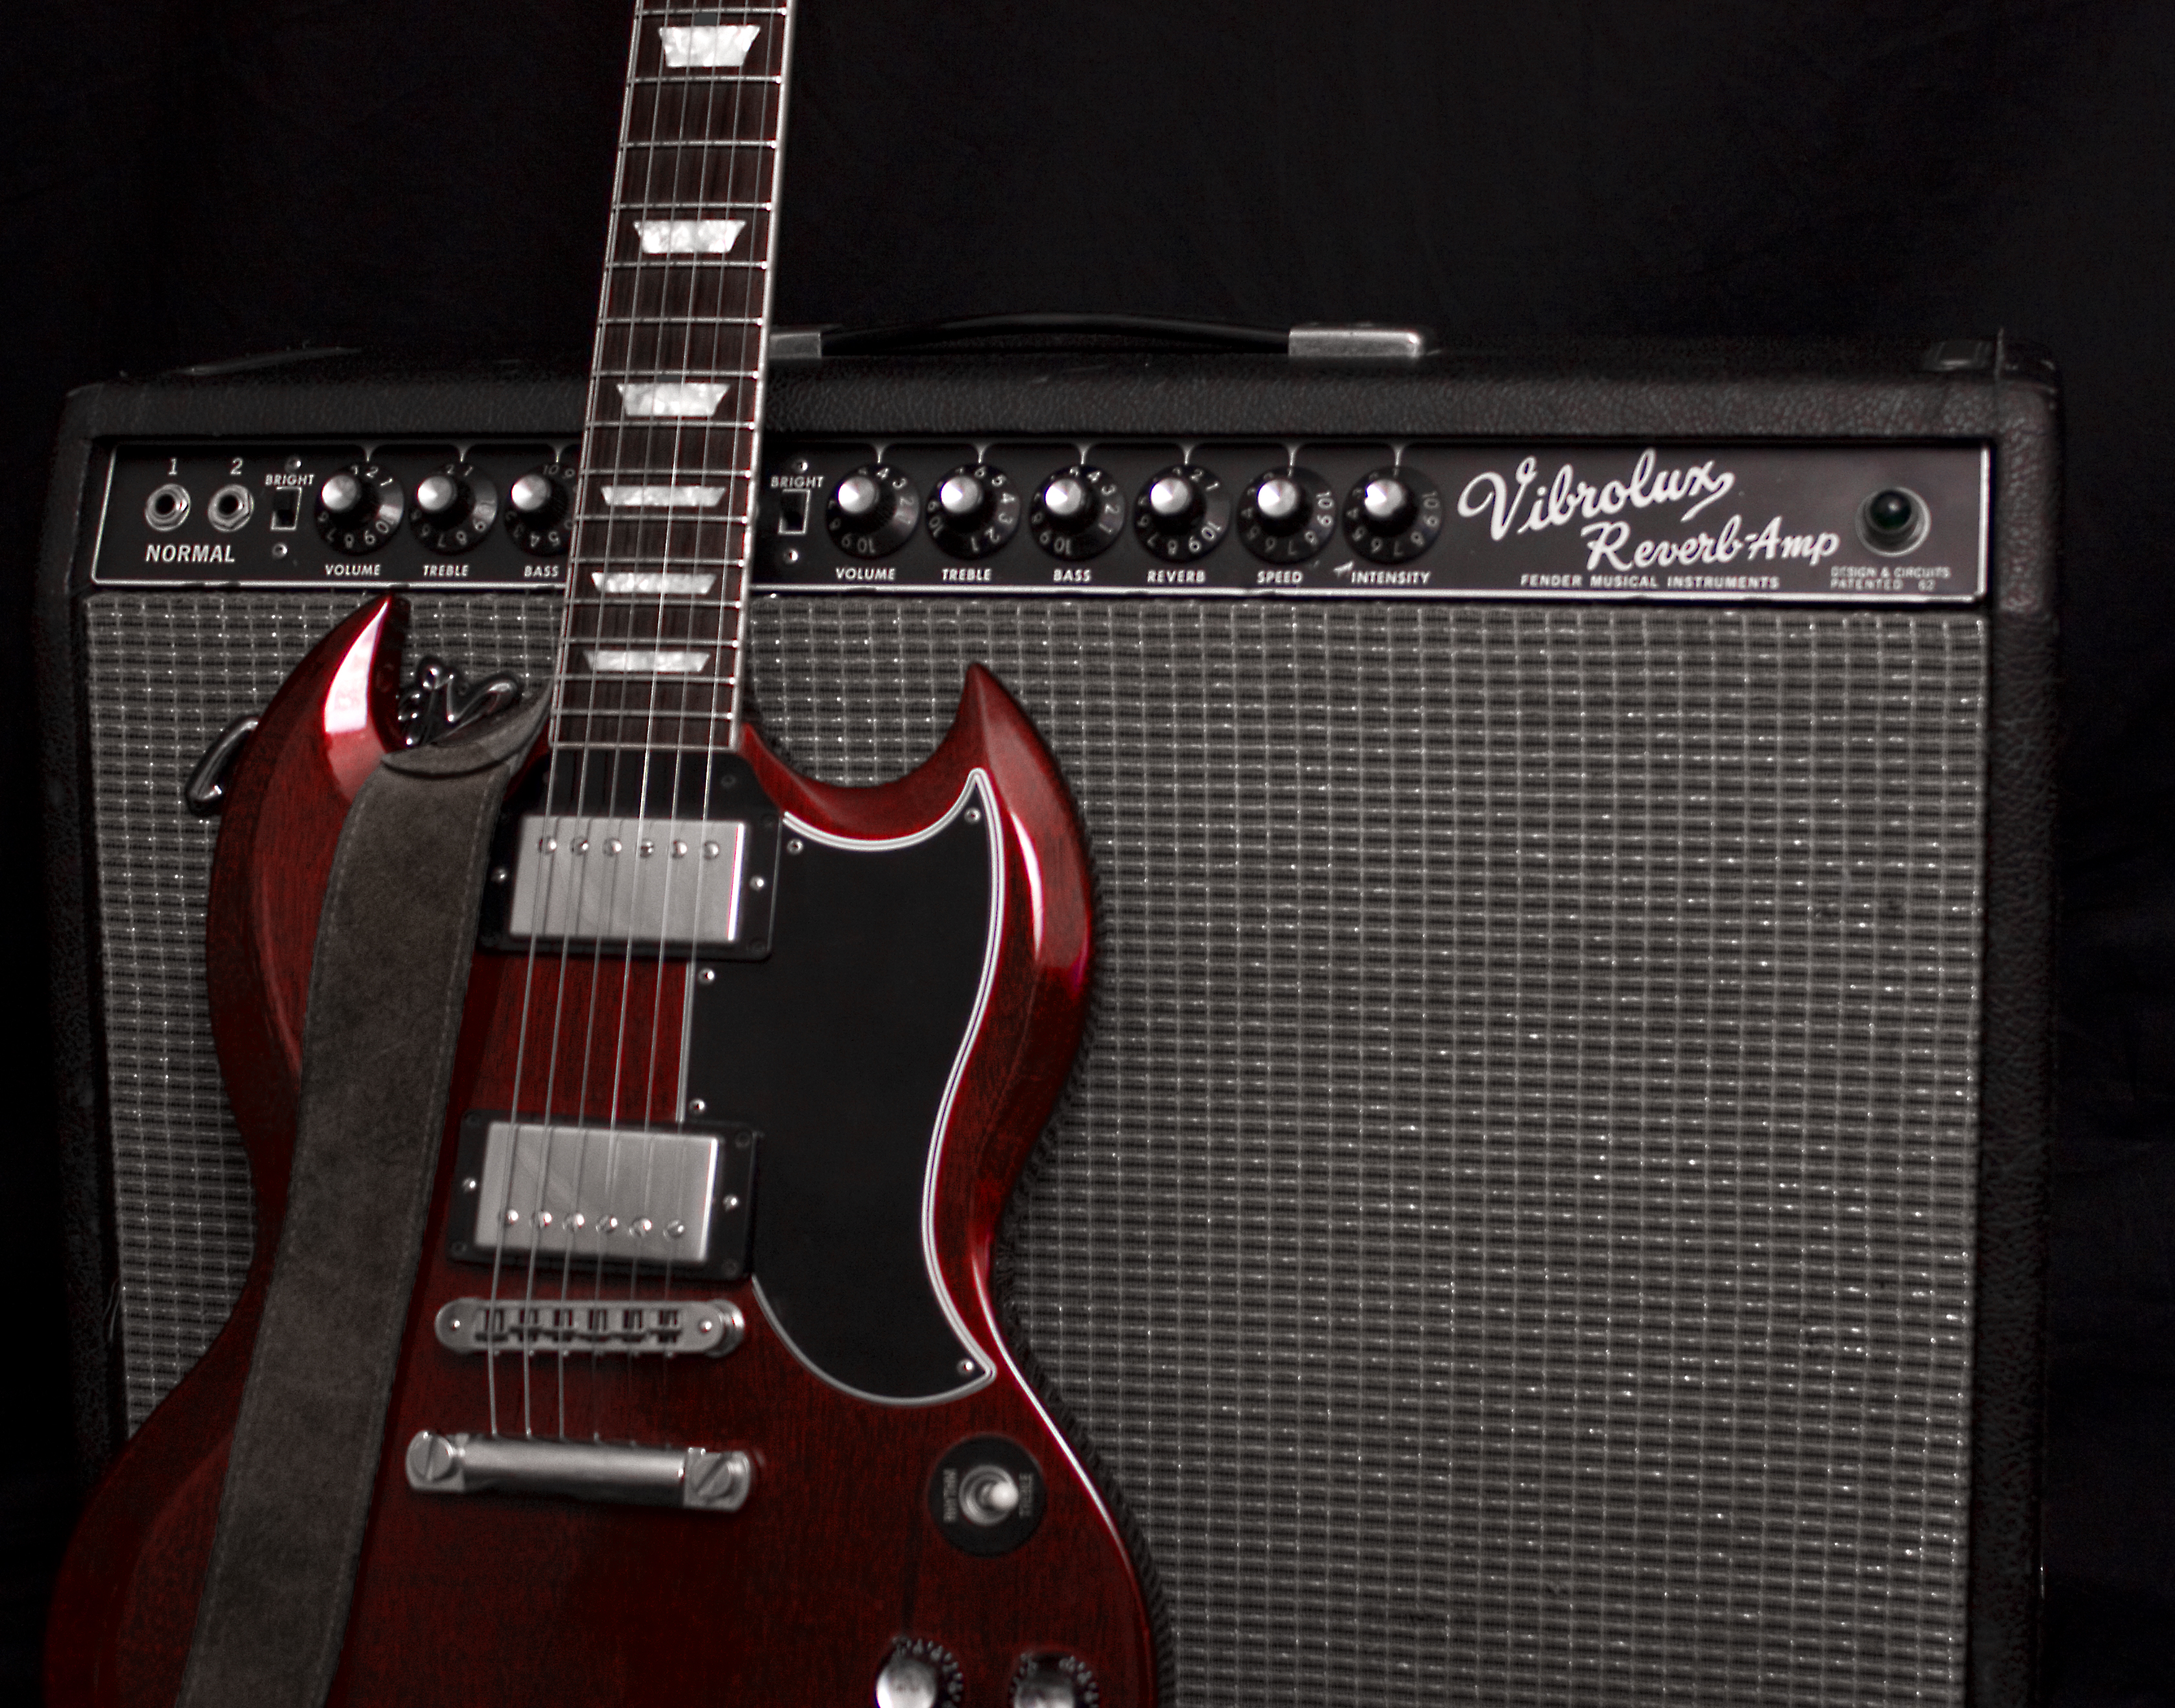 file fender vibrolux reverb with gibson sg wikimedia mons